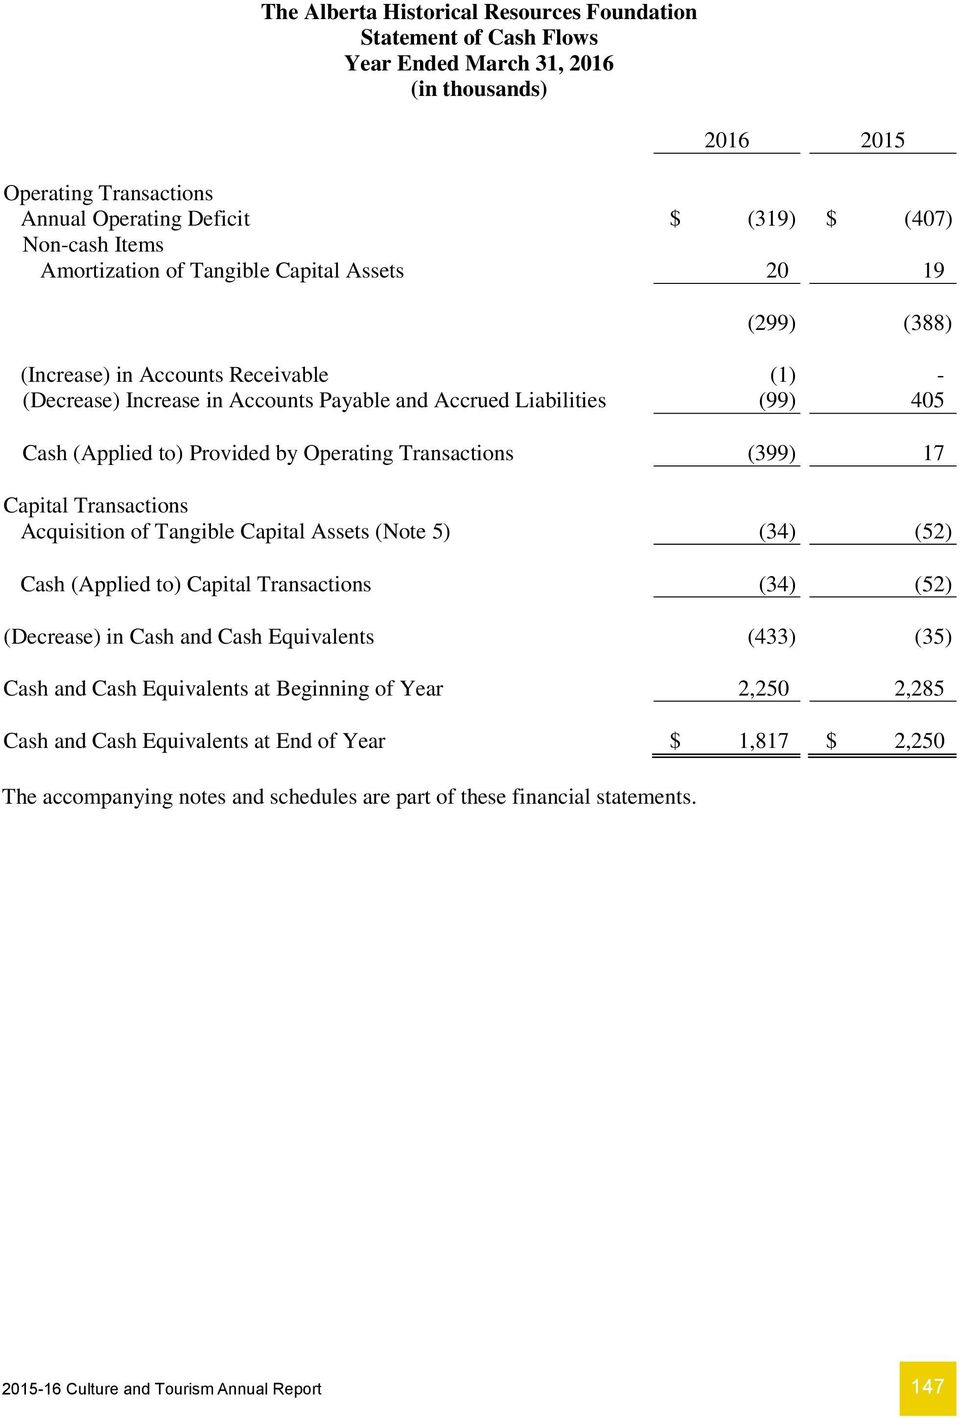 Transactions Acquisition of Tangible Capital Assets (Note 5) (34) (52) Cash (Applied to) Capital Transactions (34) (52) (Decrease) in Cash and Cash Equivalents (433) (35) Cash and